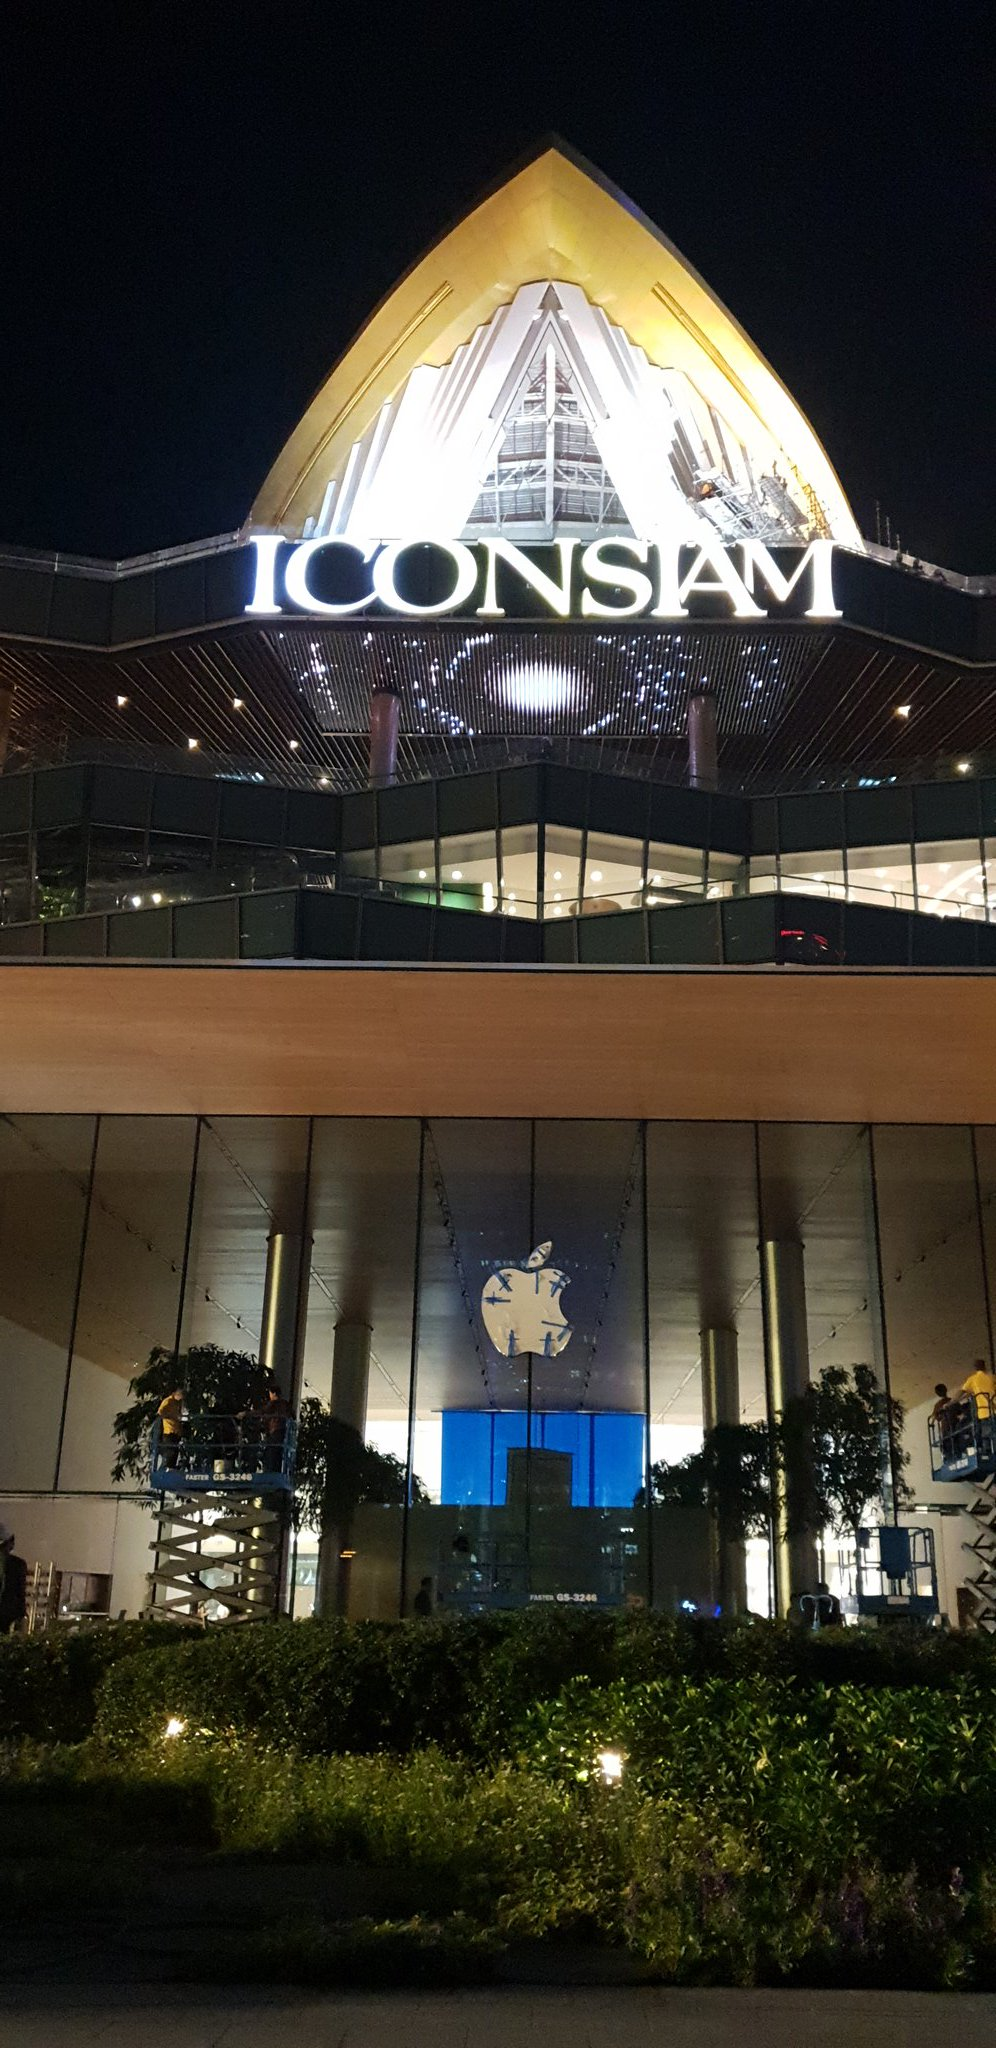 apple-iconsiam-inside